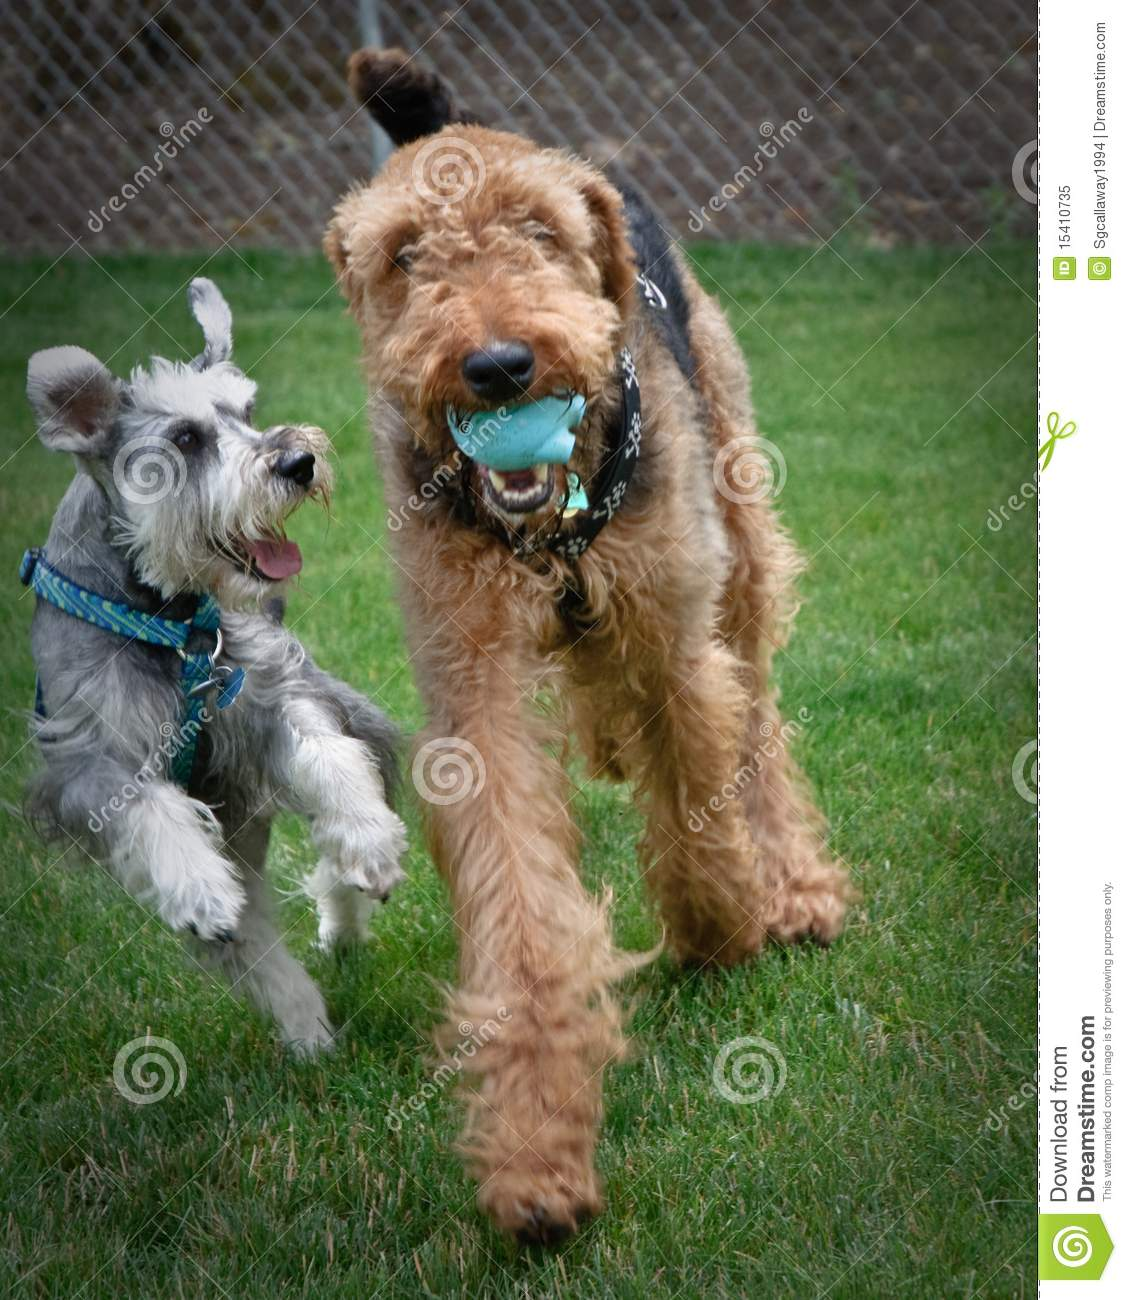 Two playful dogs outdoors